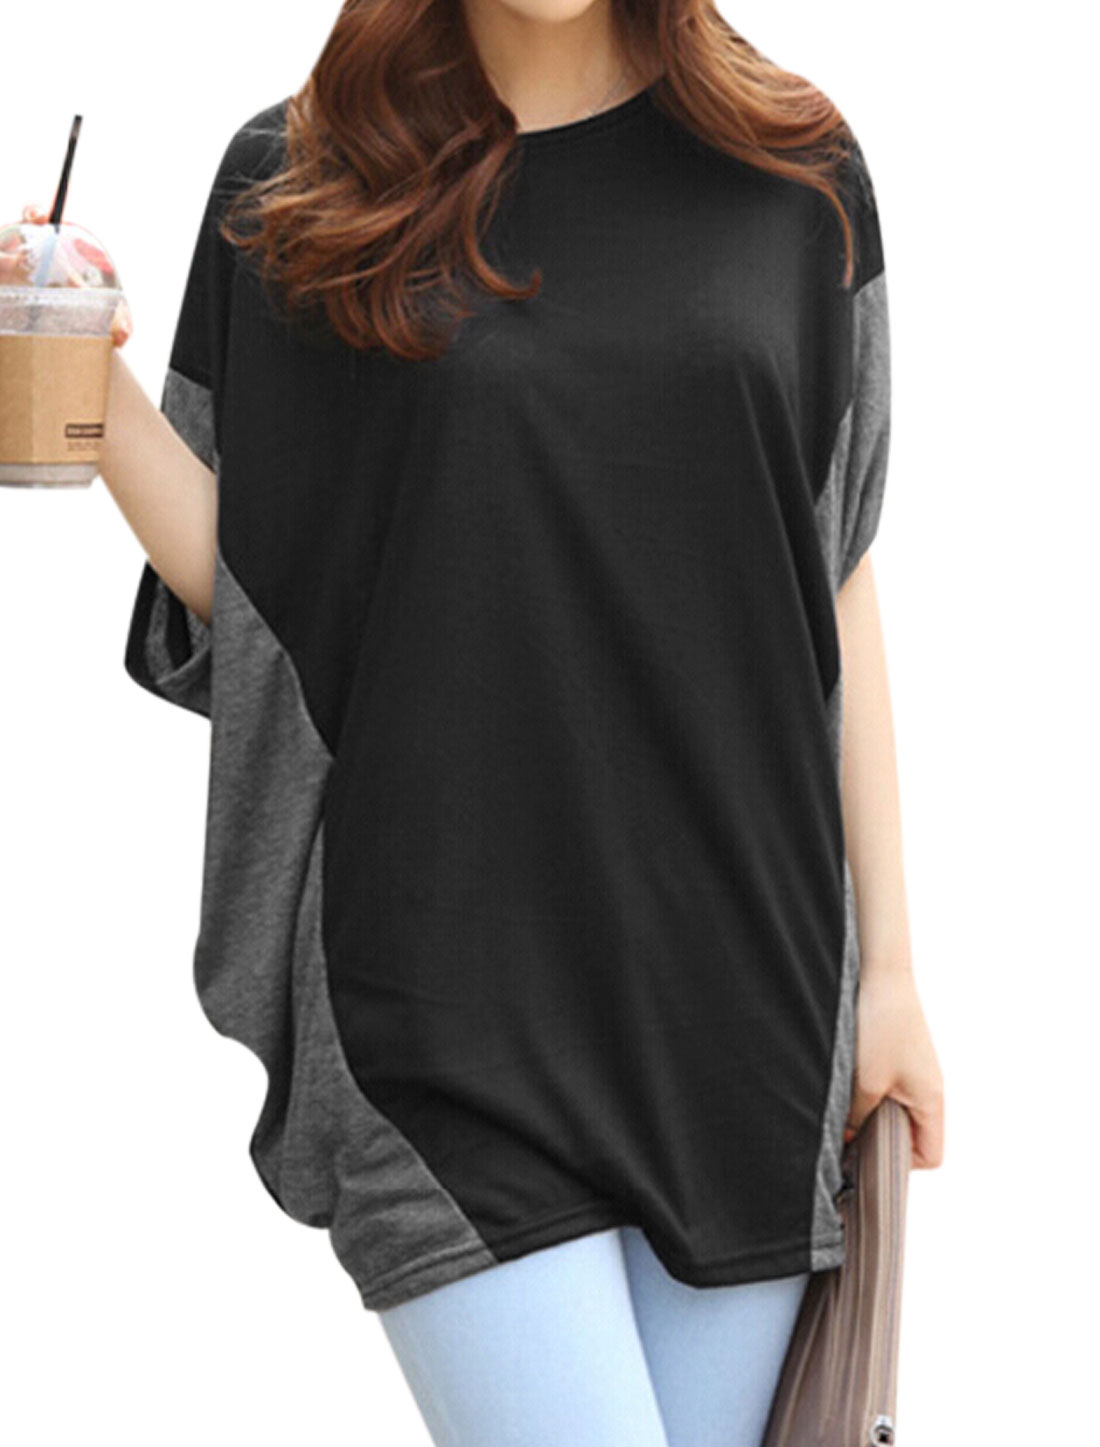 Women Short Batwing Sleeves Color Block Tunic Shirt Black XS